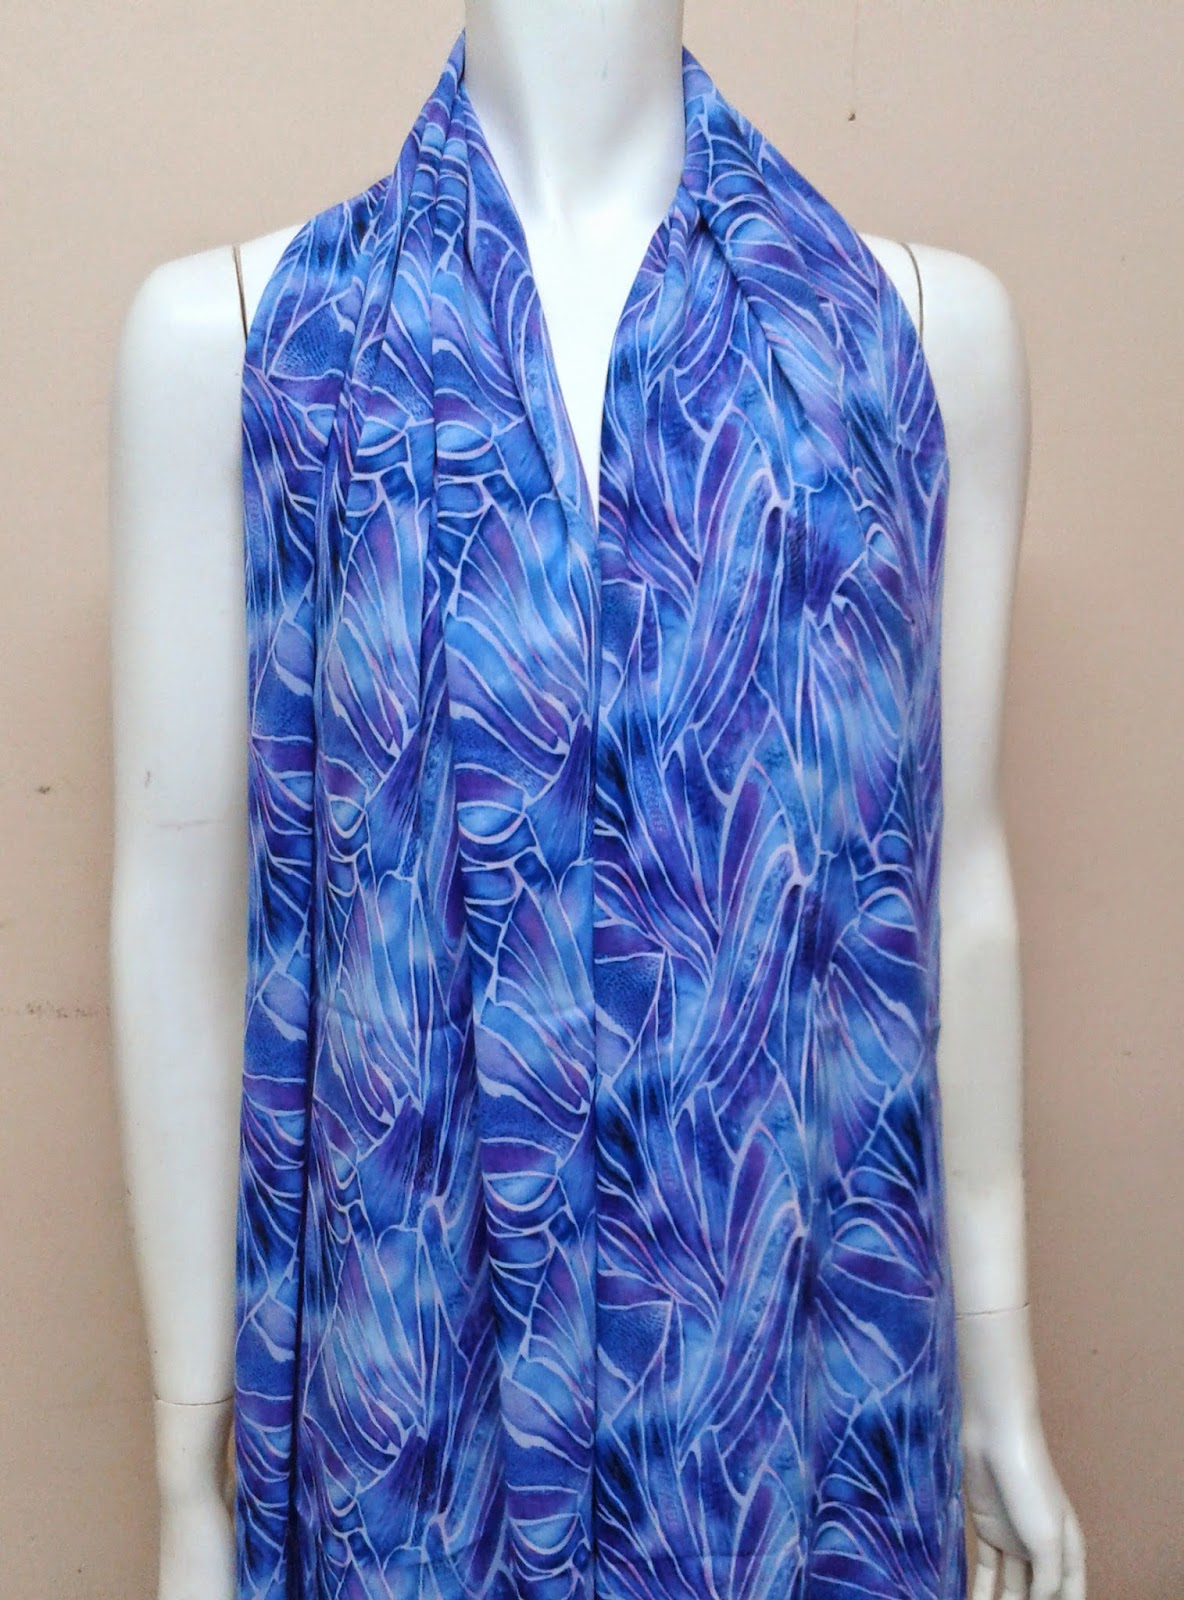 http://dzethiniecouture.wix.com/dzethiniecouture#!product/prd1/1974884645/flower-petals-printed-shawl-blue